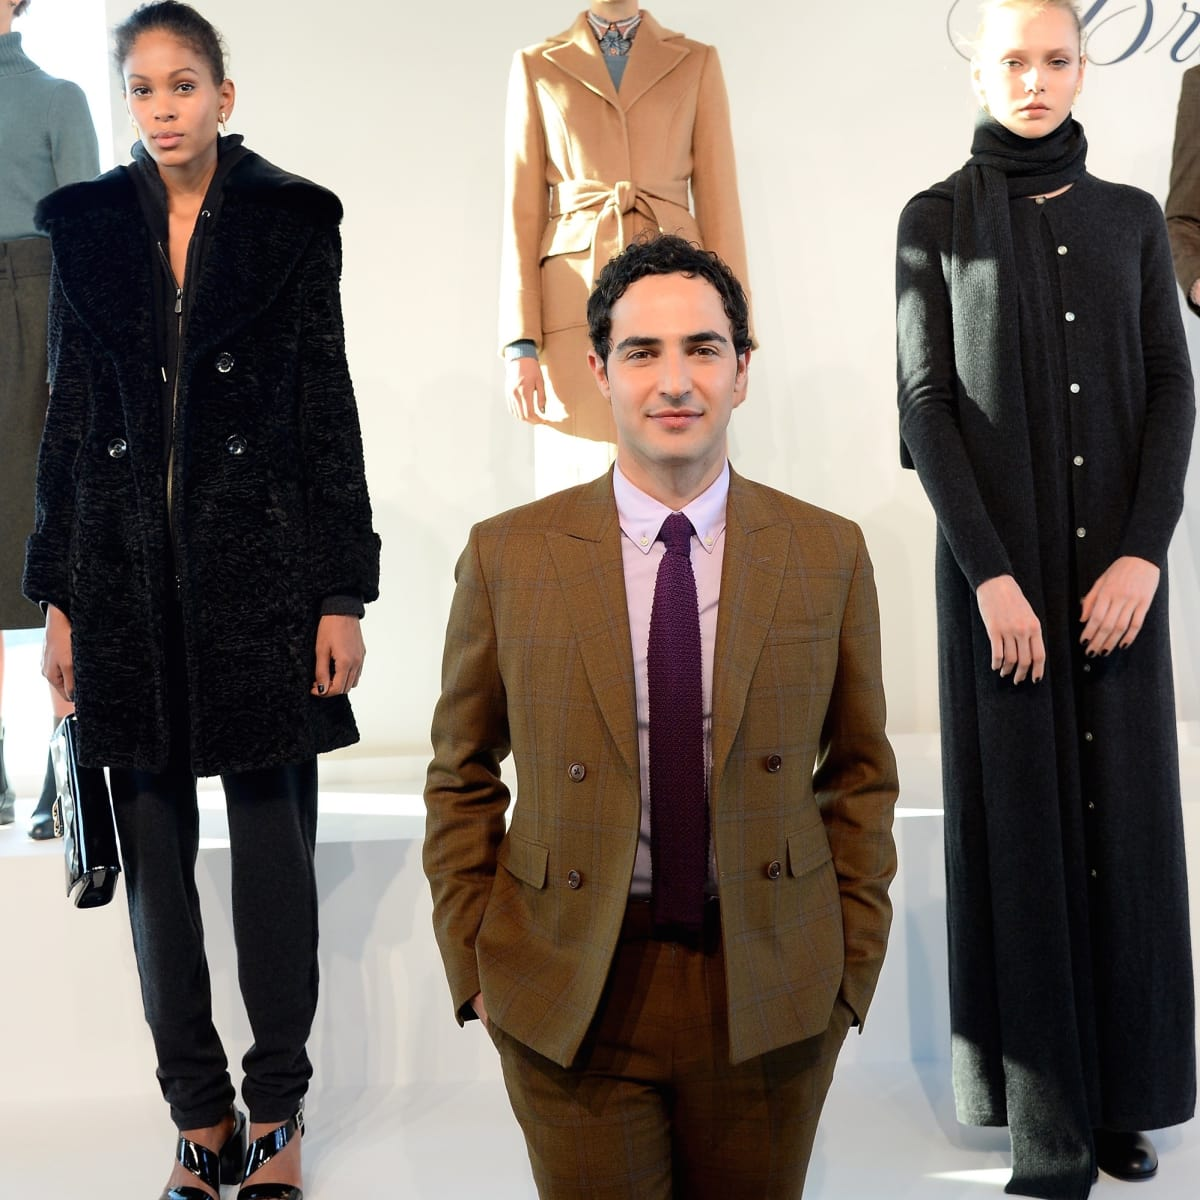 Zac Posen Brooks Brothers fall collection 2016